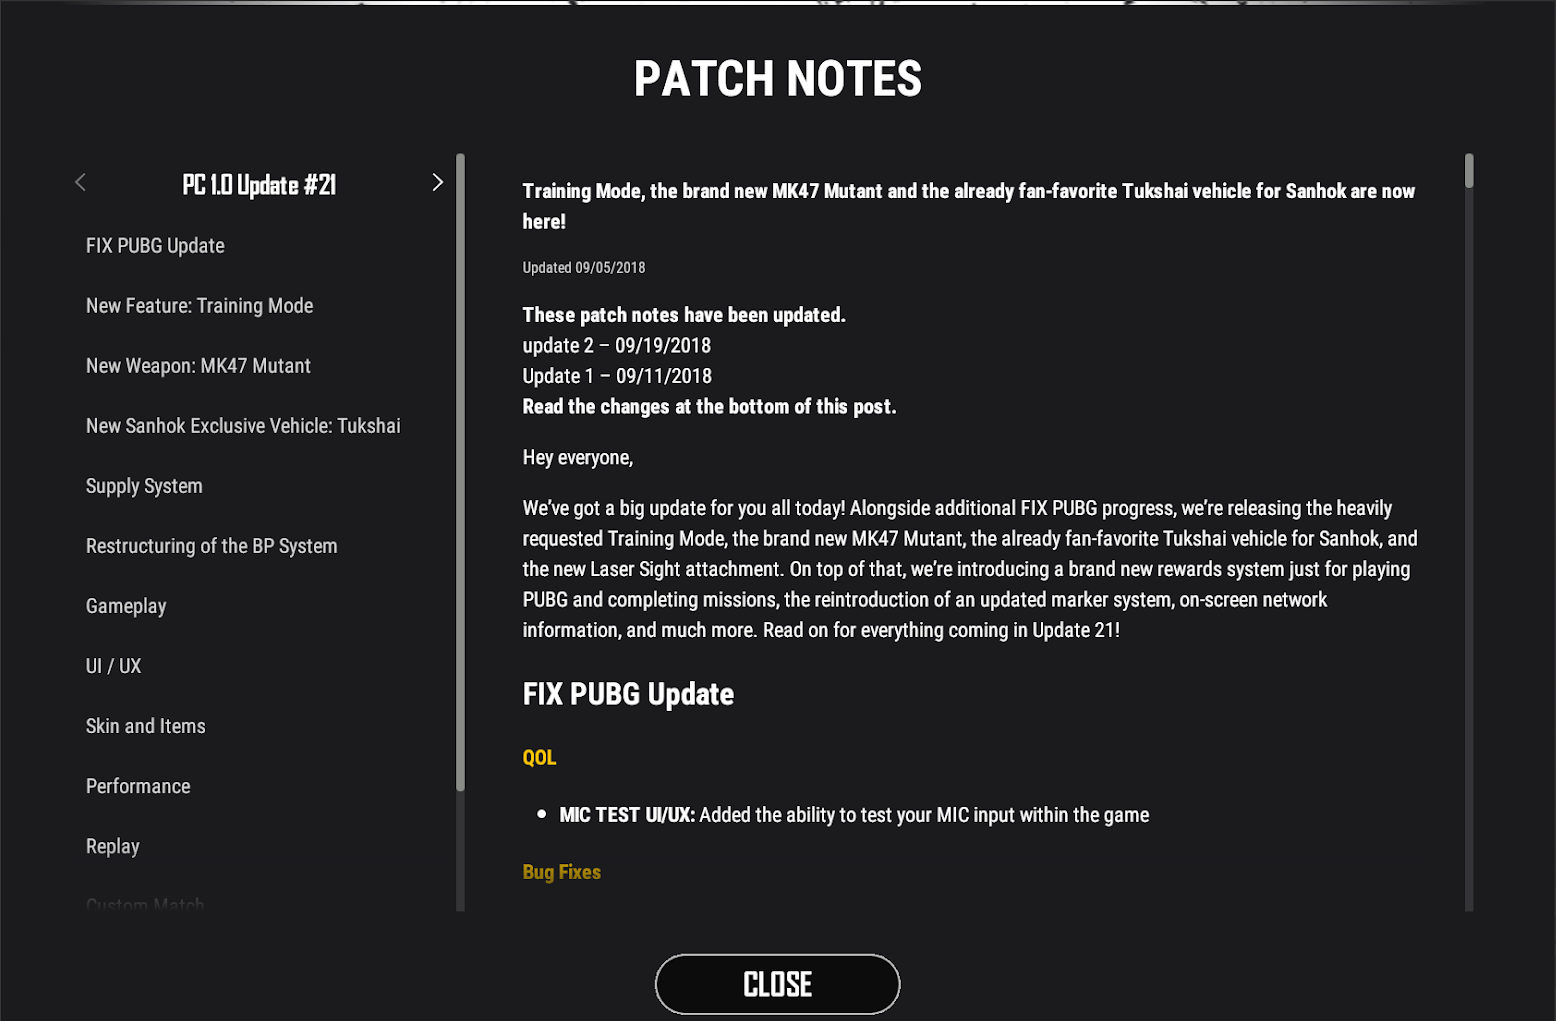 Lobby Patch Notes